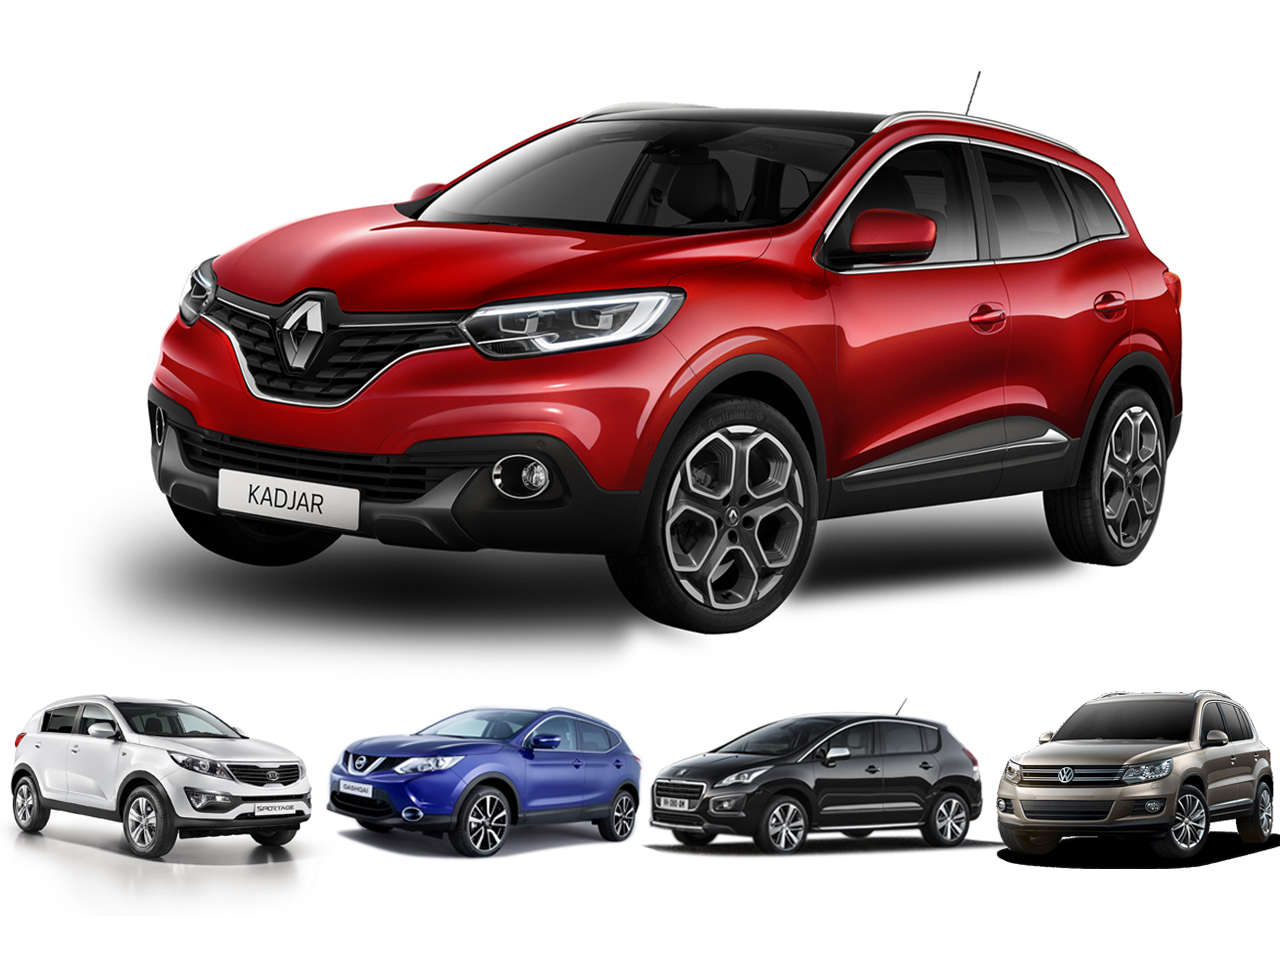 le renault kadjar face ses rivaux renault auto evasion forum auto. Black Bedroom Furniture Sets. Home Design Ideas